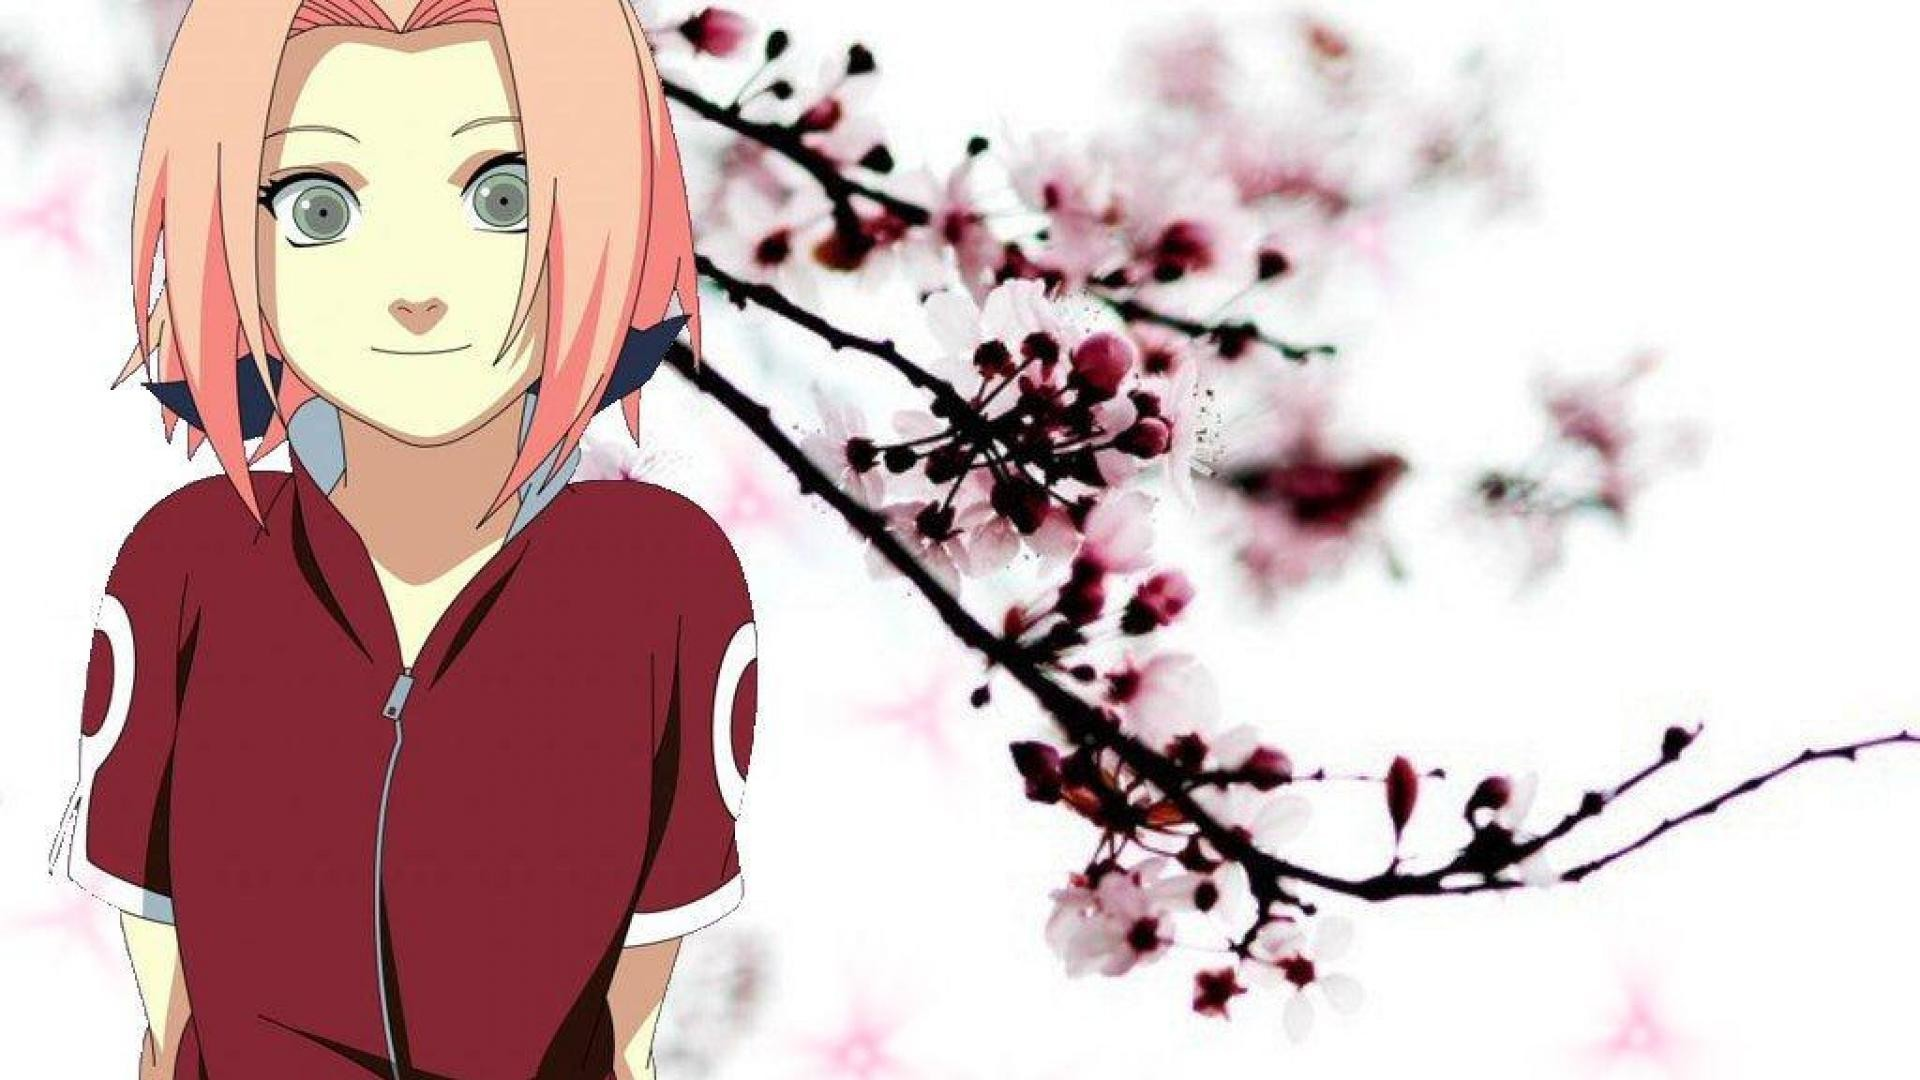 Res: 1920x1080, Tags: Anime ...